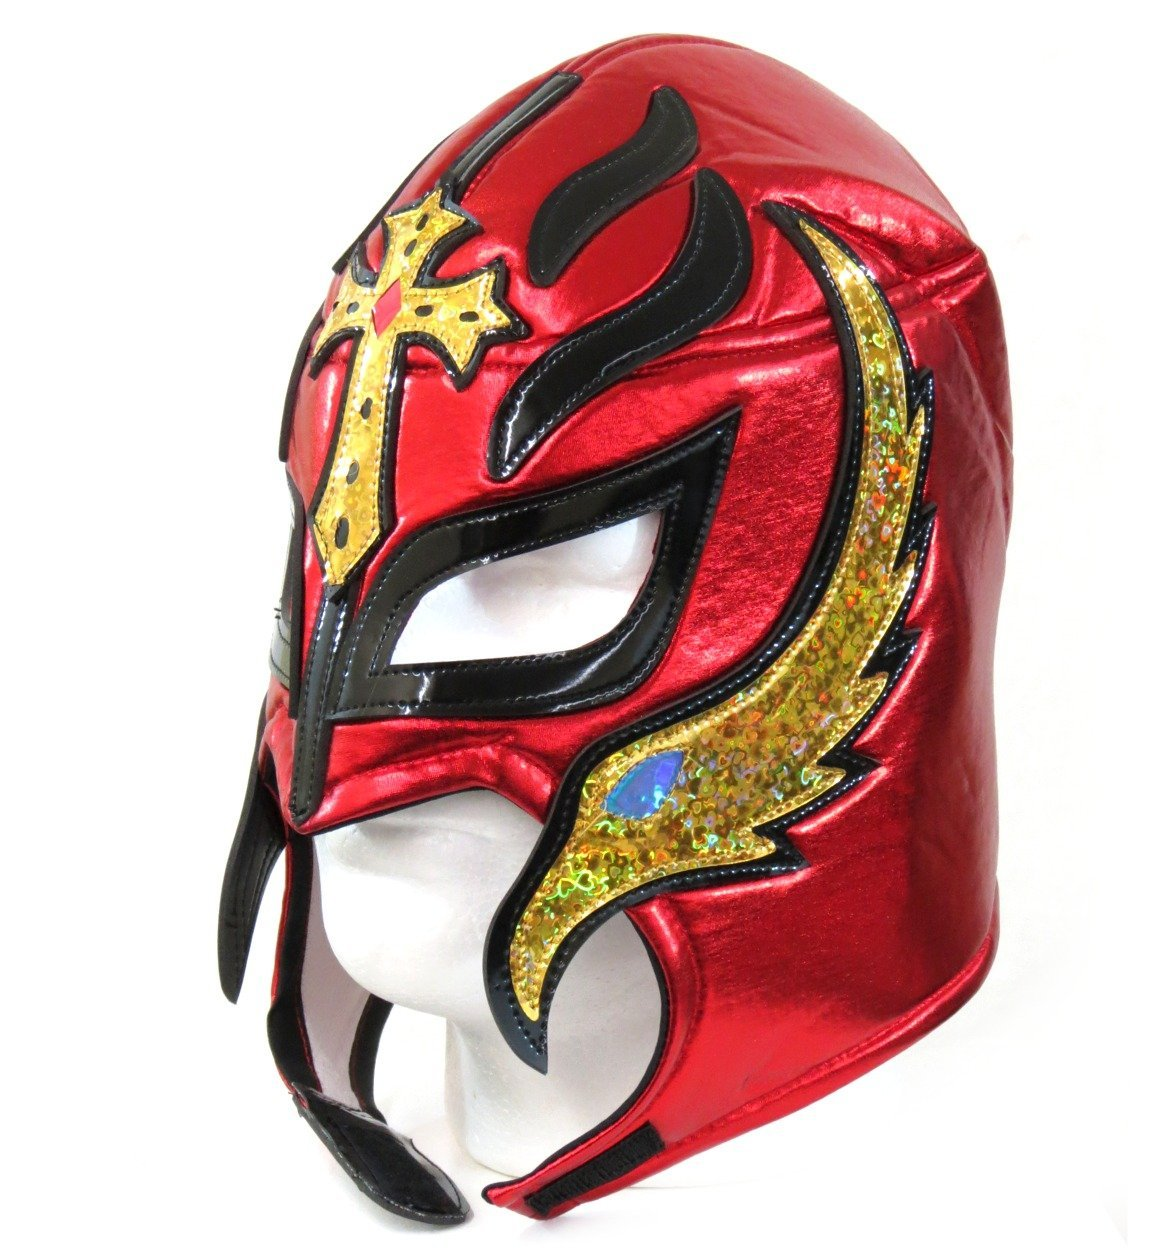 Lucha Libre Rey Misterio Buy Rey Mysterio Adult Lucha Libre Wrestling Mask Pro Fit